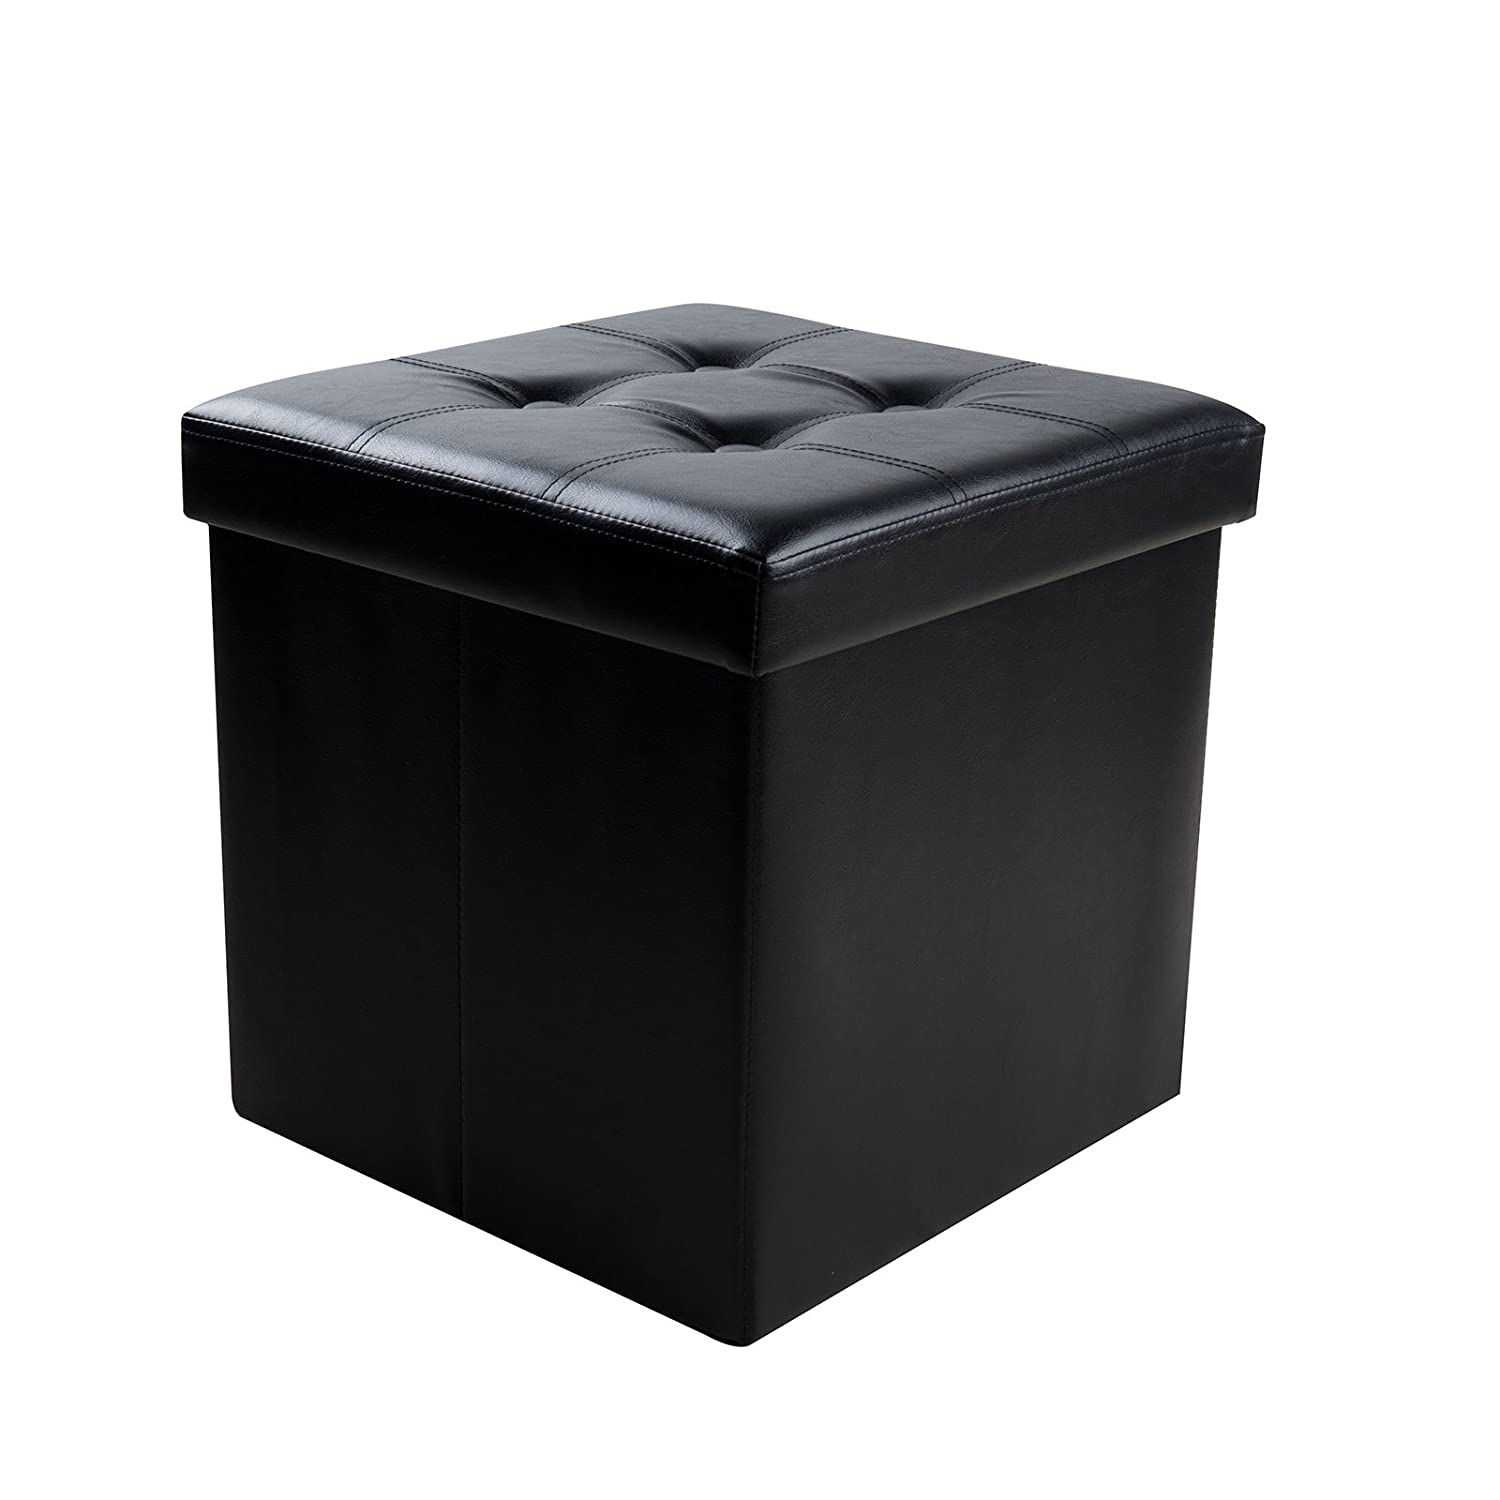 Sable Storage Ottoman Cube Foldable Bench, 15